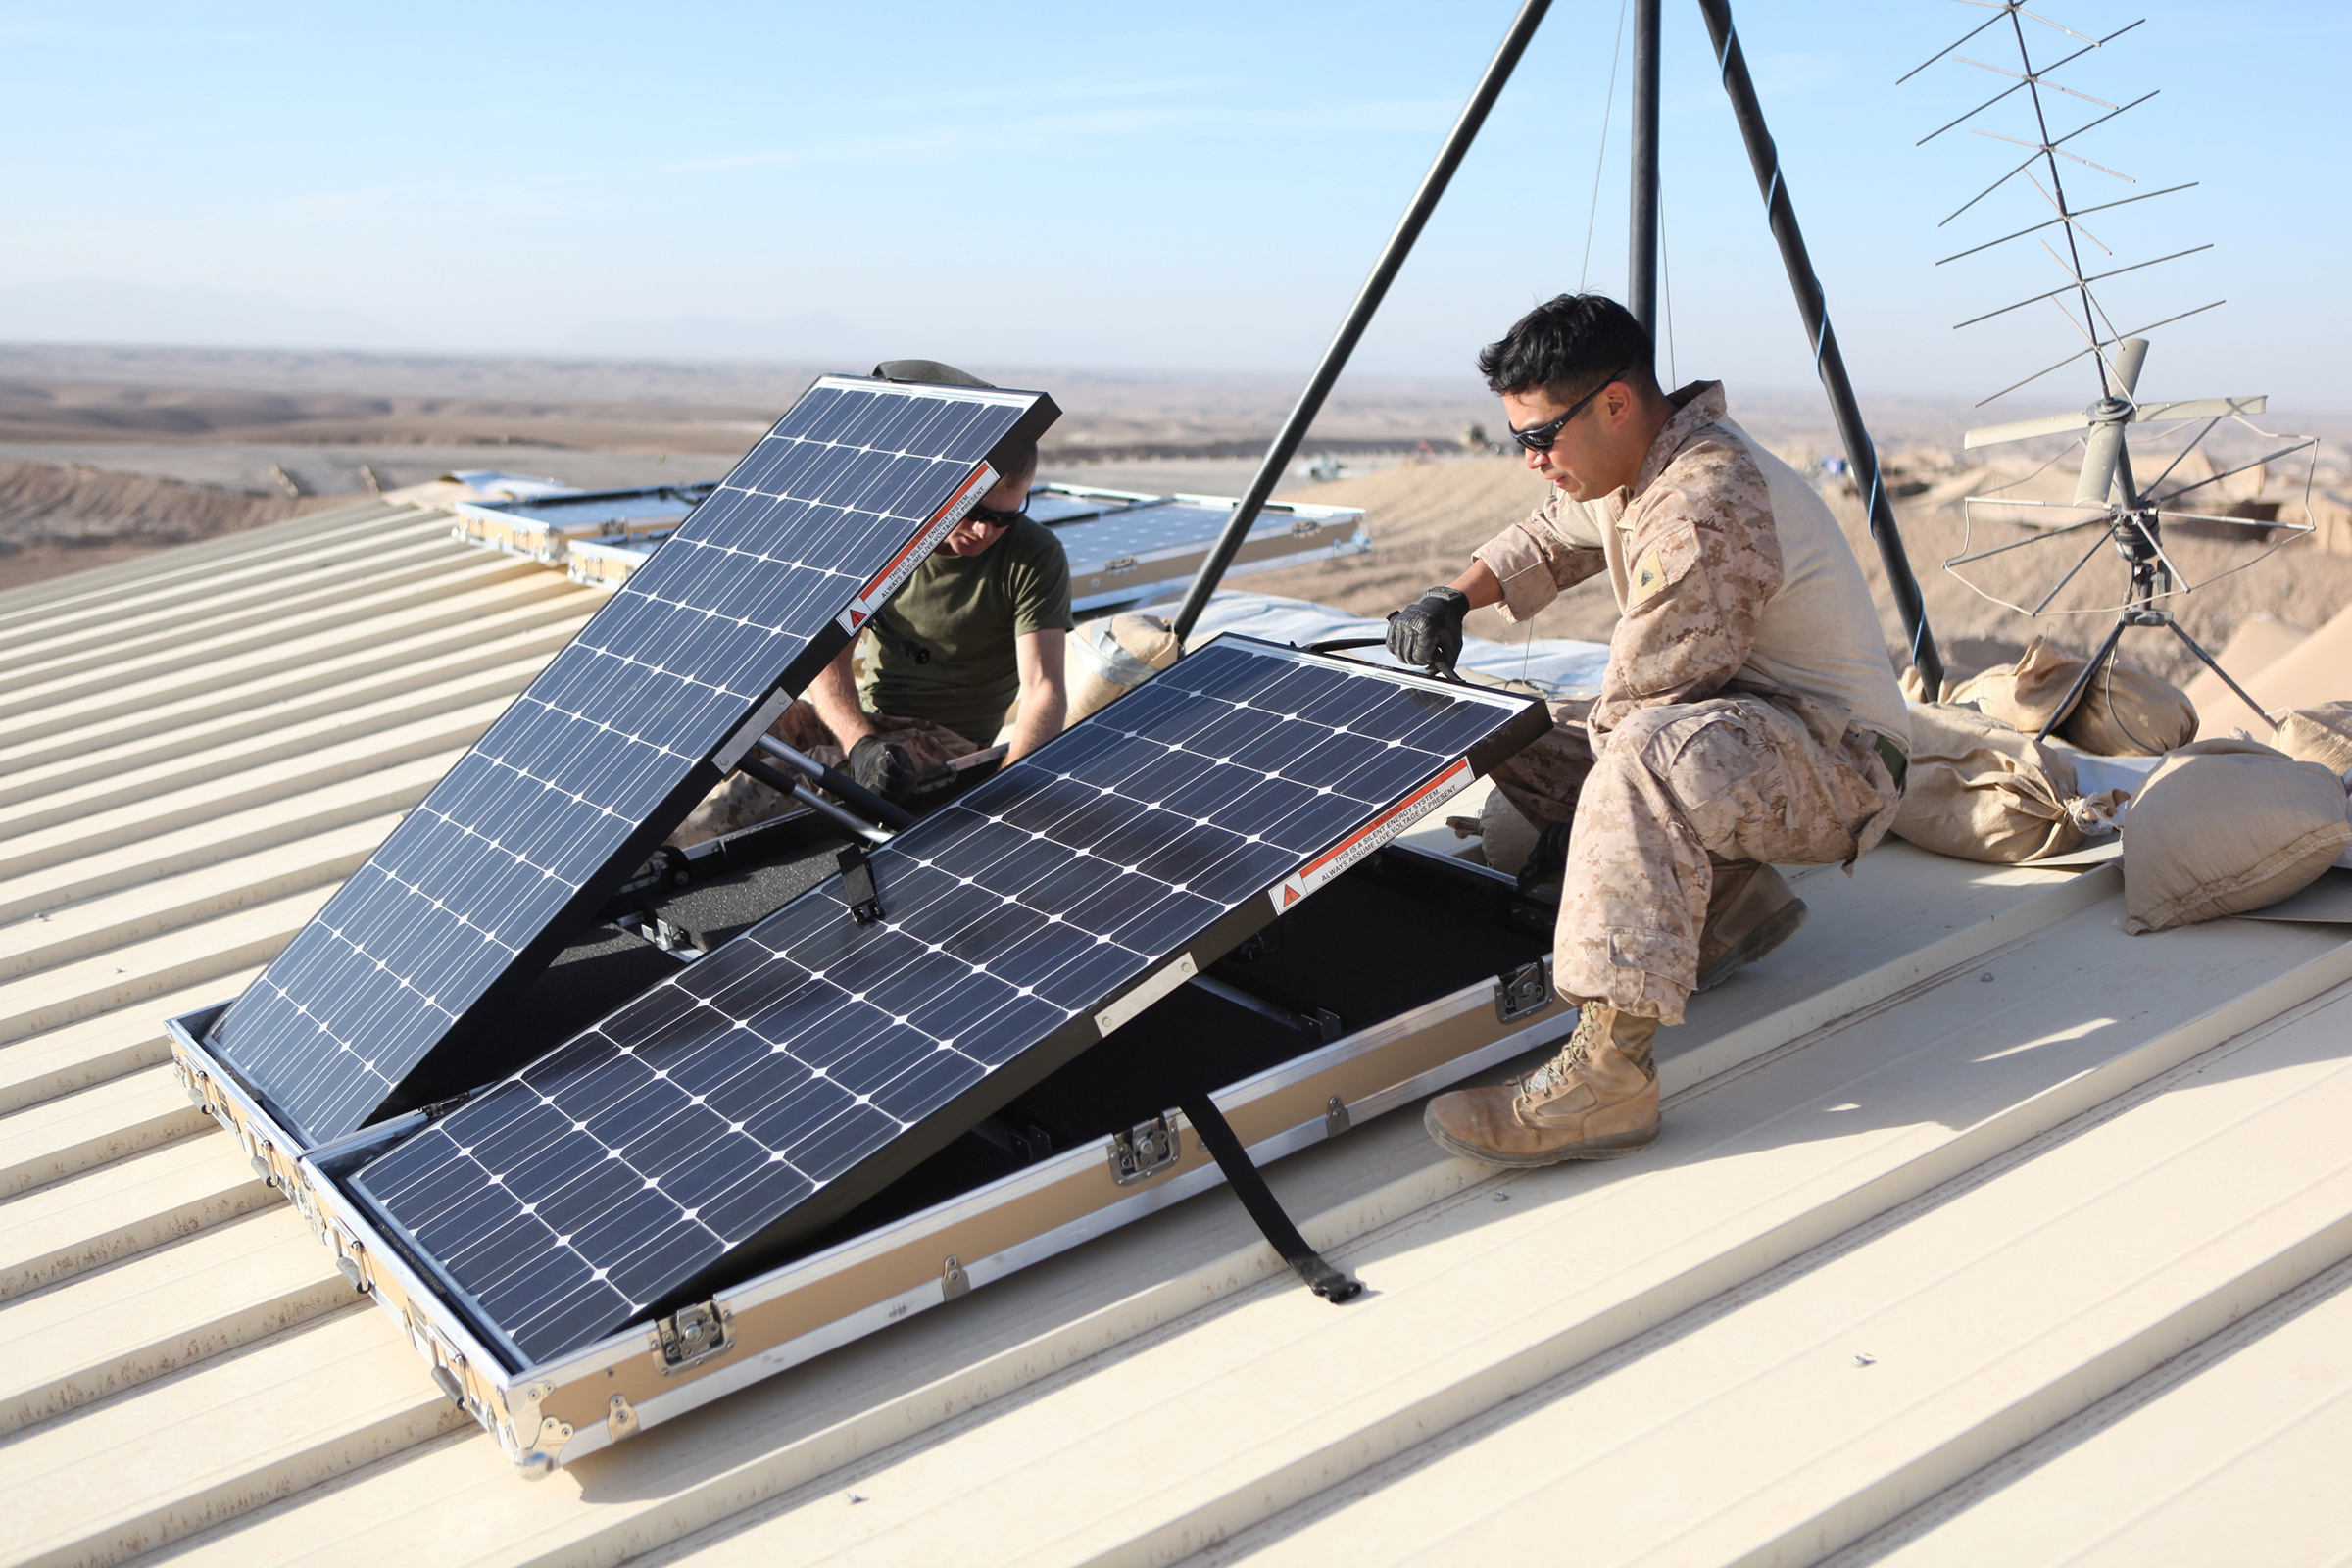 U.S. Marine Corps Corporal Robert G. Sutton (L) and Corporal Moses E. Perez install new solar panels on Combat Outpost Shukvani, Helmand province, Afghanistan, on Nov. 19, 2012